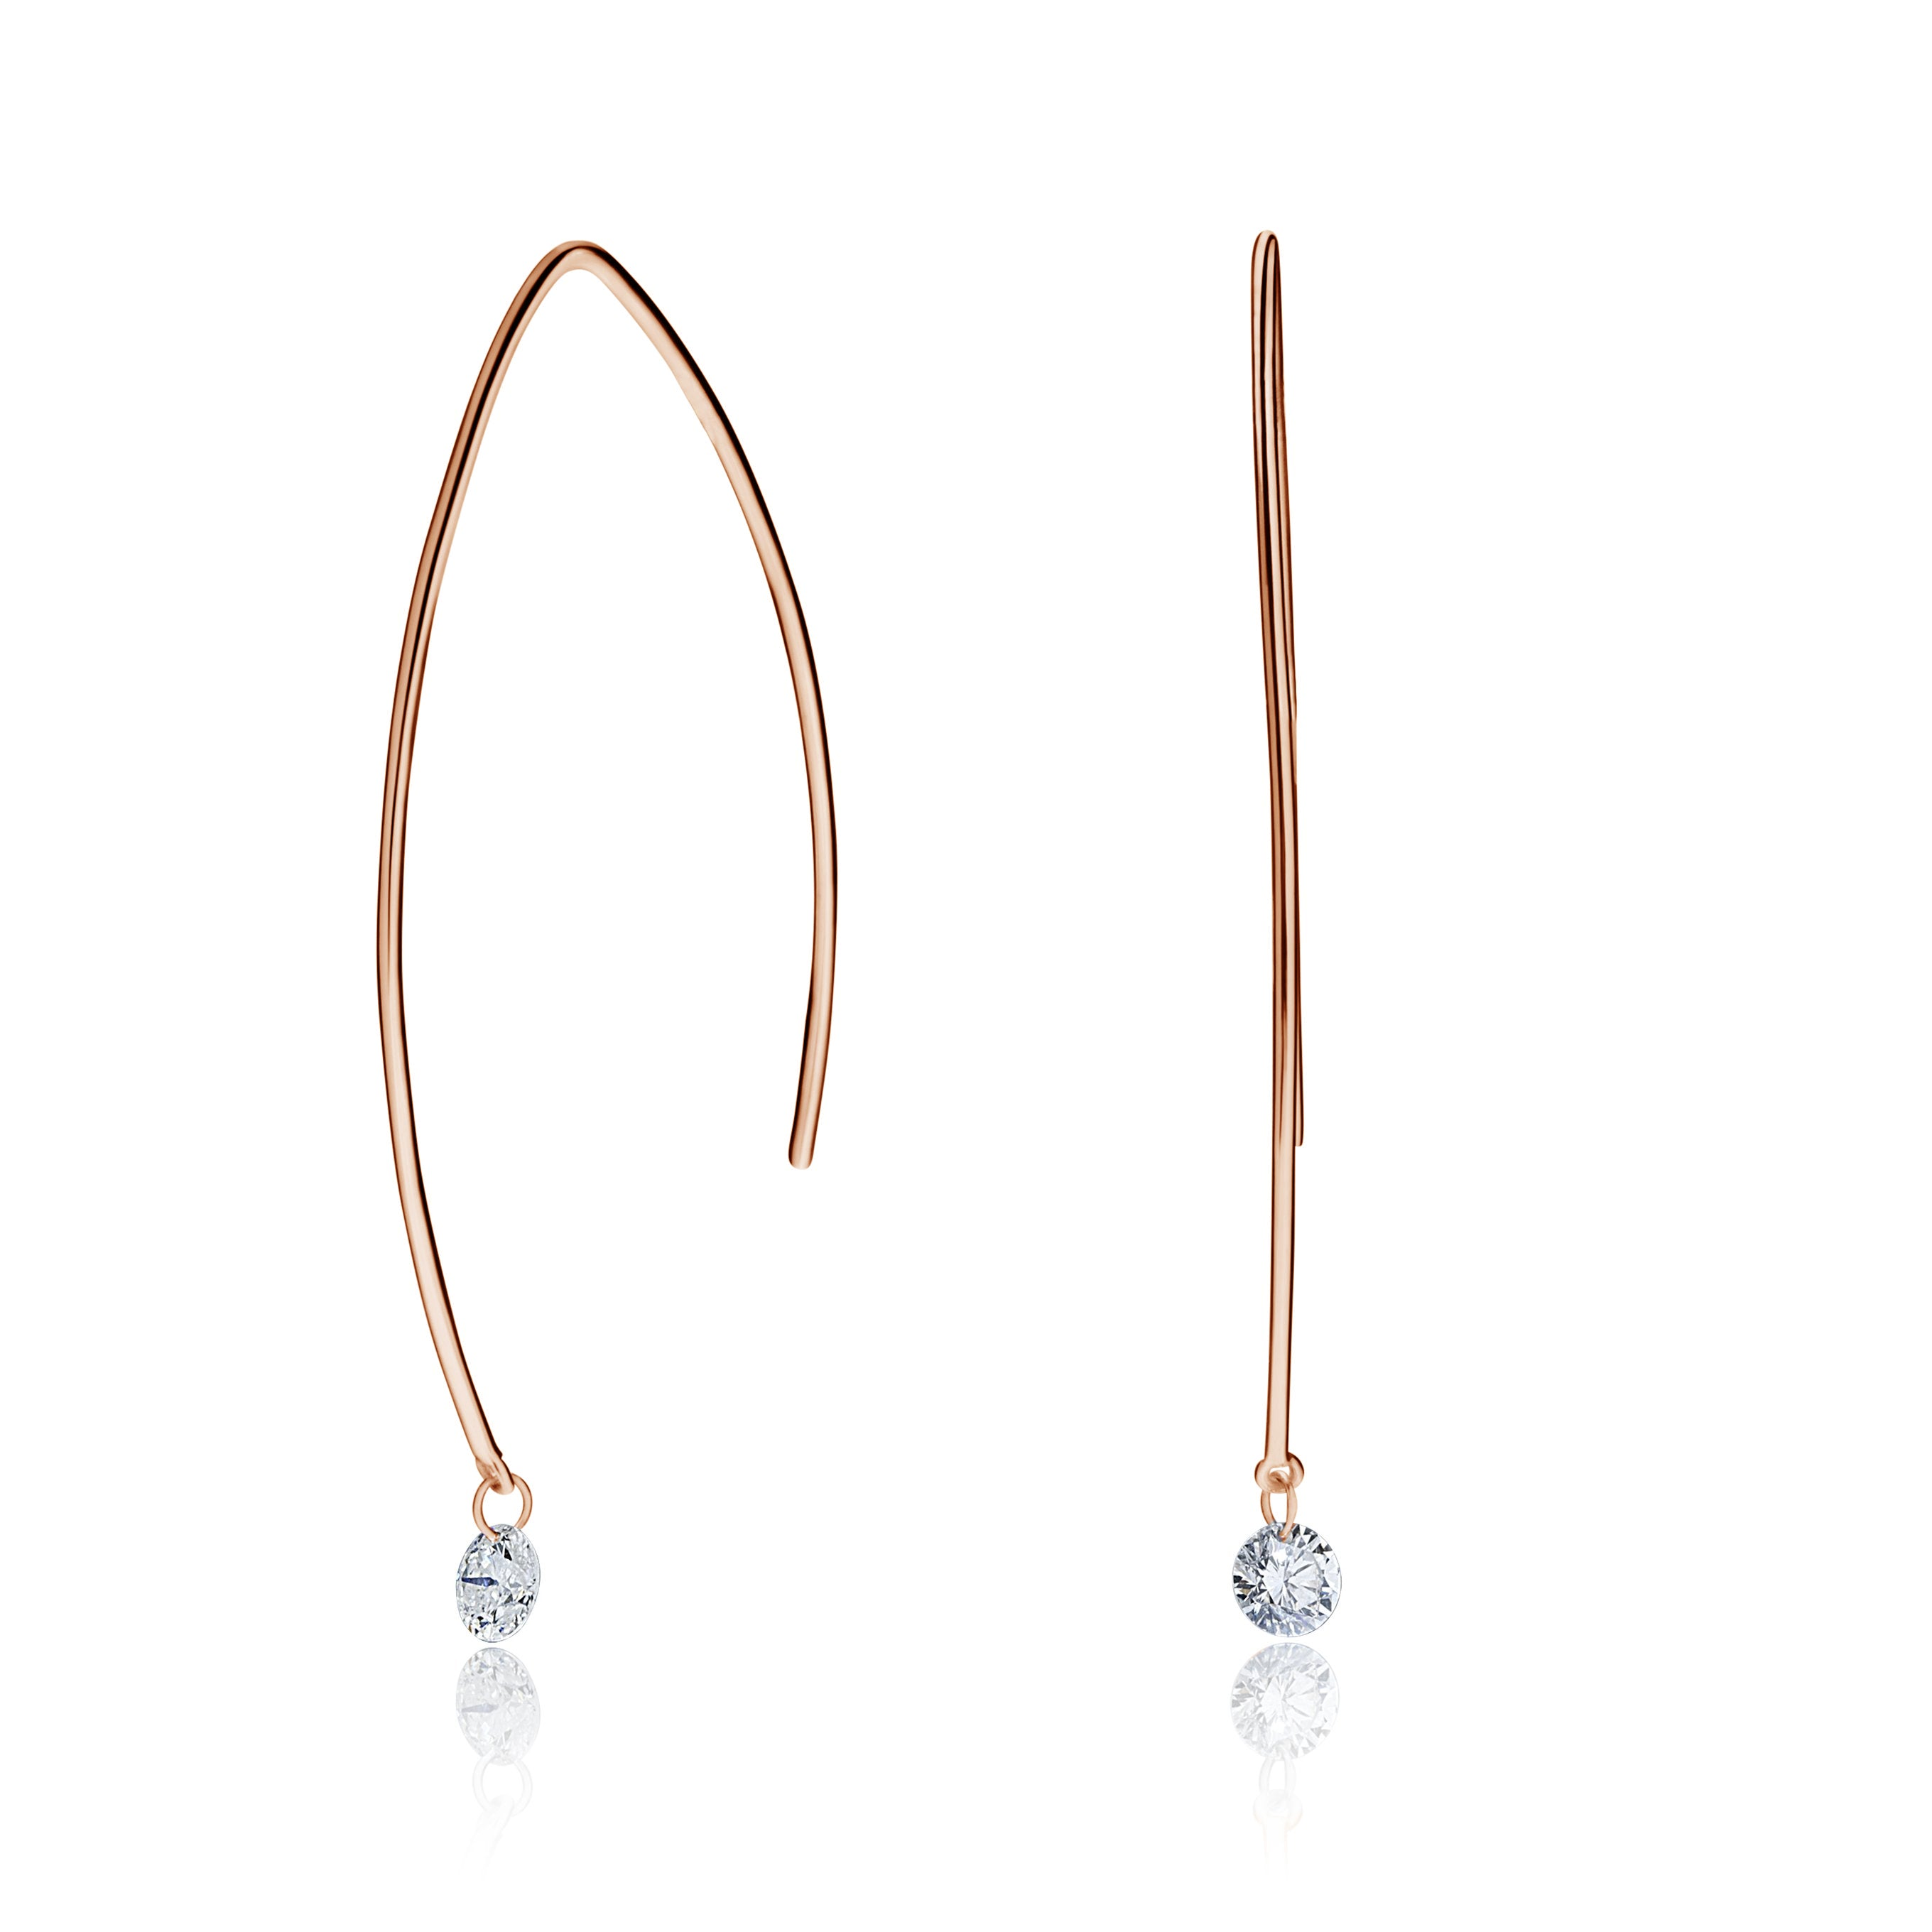 Delicate Long Drilled Round Diamond Drop Earrings